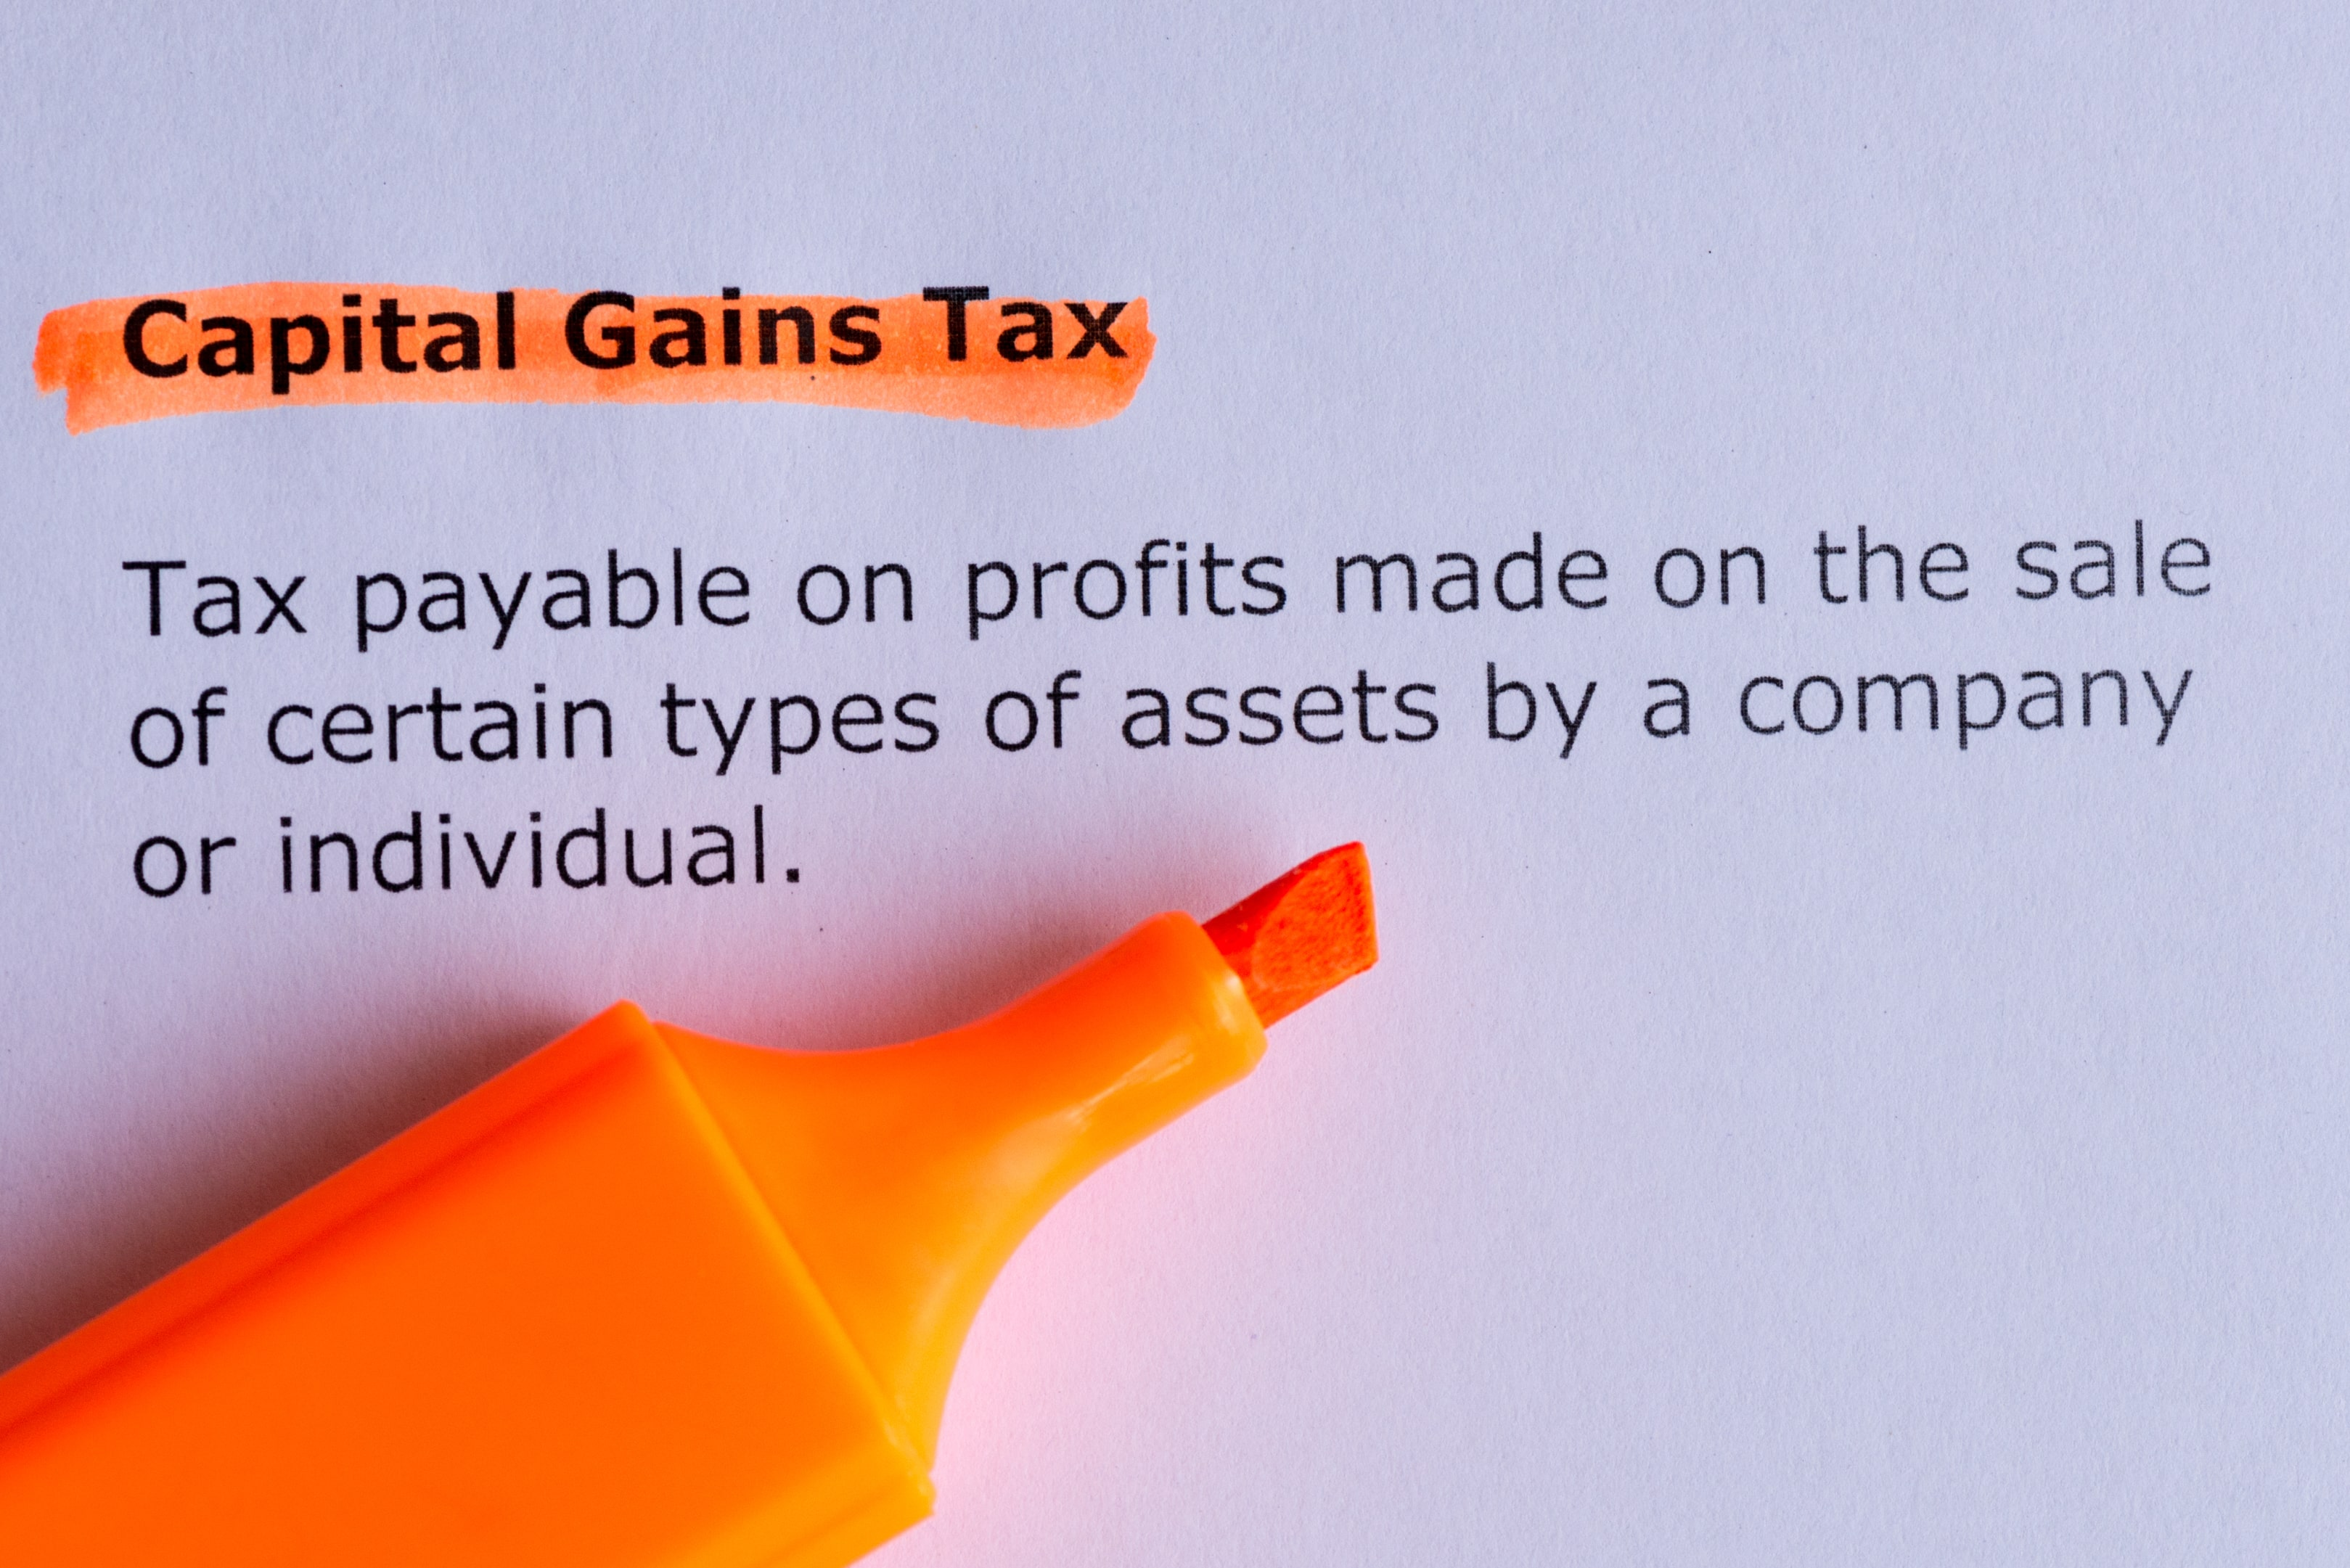 How can investors mitigate capital gains tax with the help of tax efficient schemes?